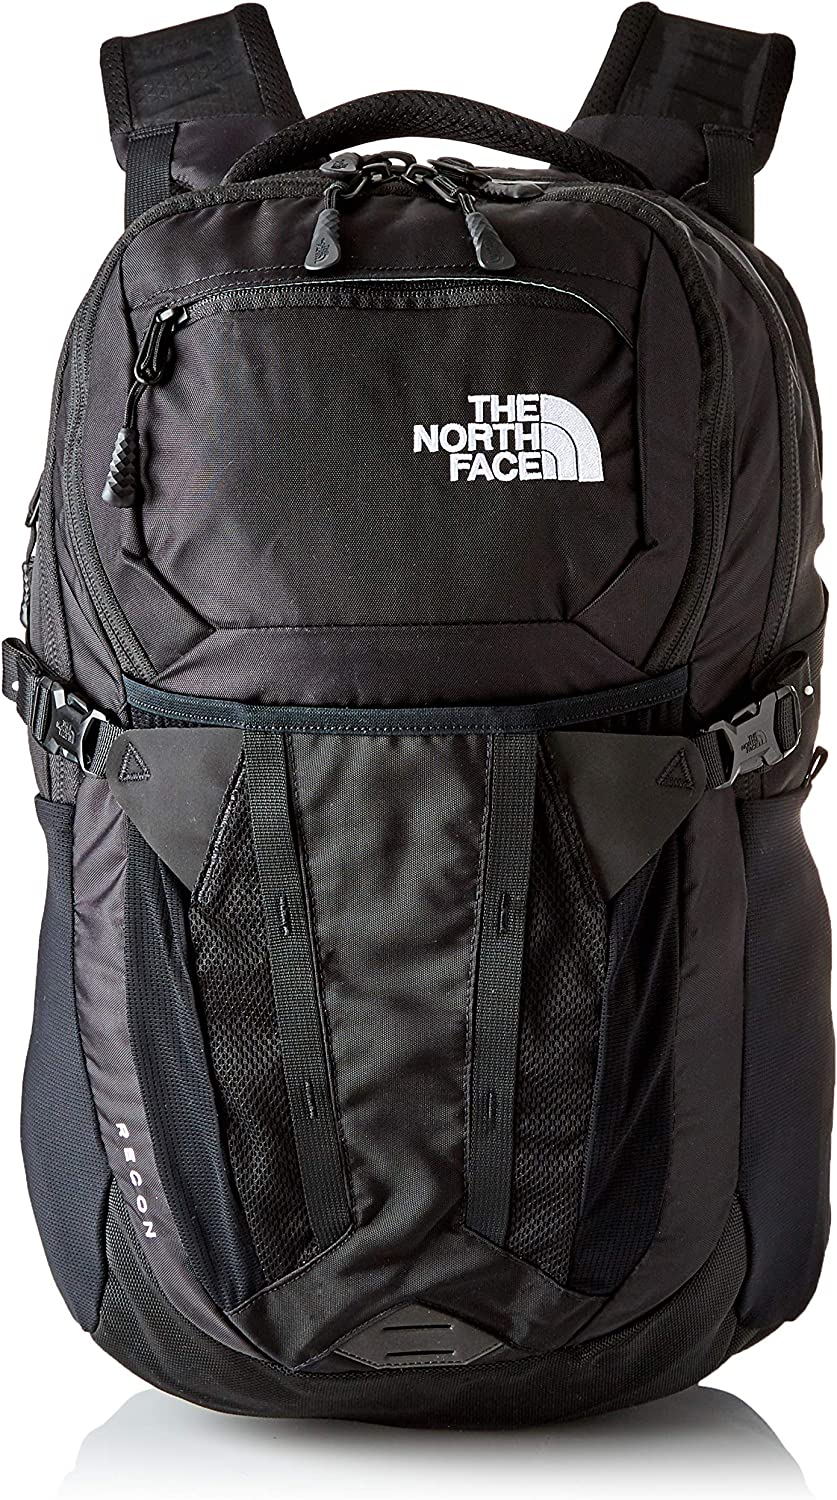 Mochila The North Face modelo Recon